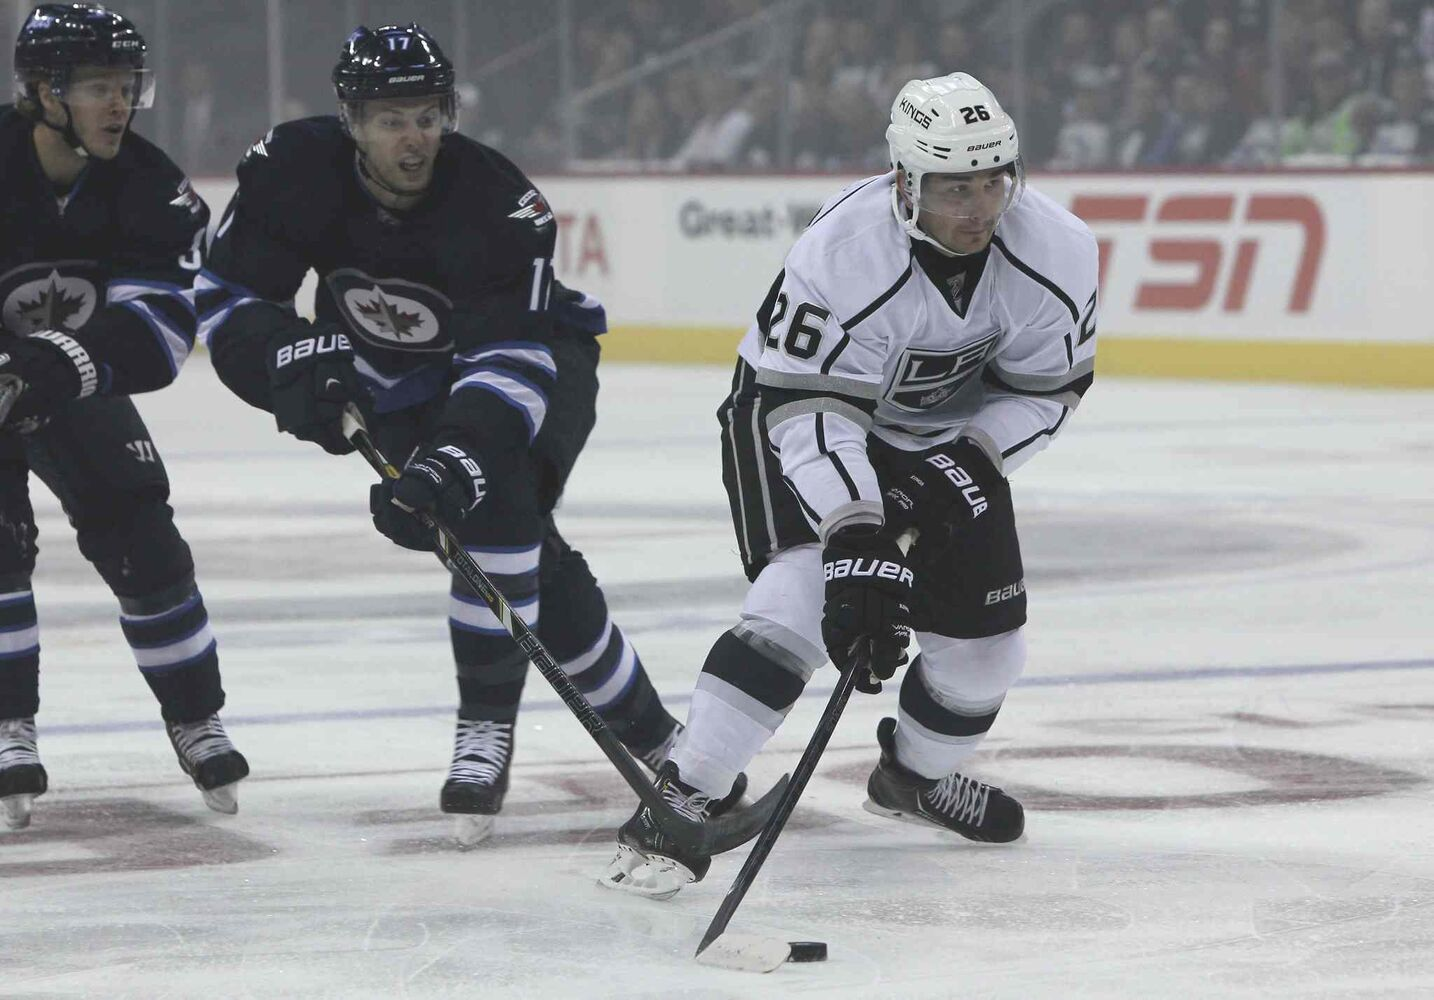 Winnipeg Jets' James Wright (17) tries to slow down Los Angeles Kings' Slava Voynov (26) in the first period. (MIKE DEAL / WINNIPEG FREE PRESS)